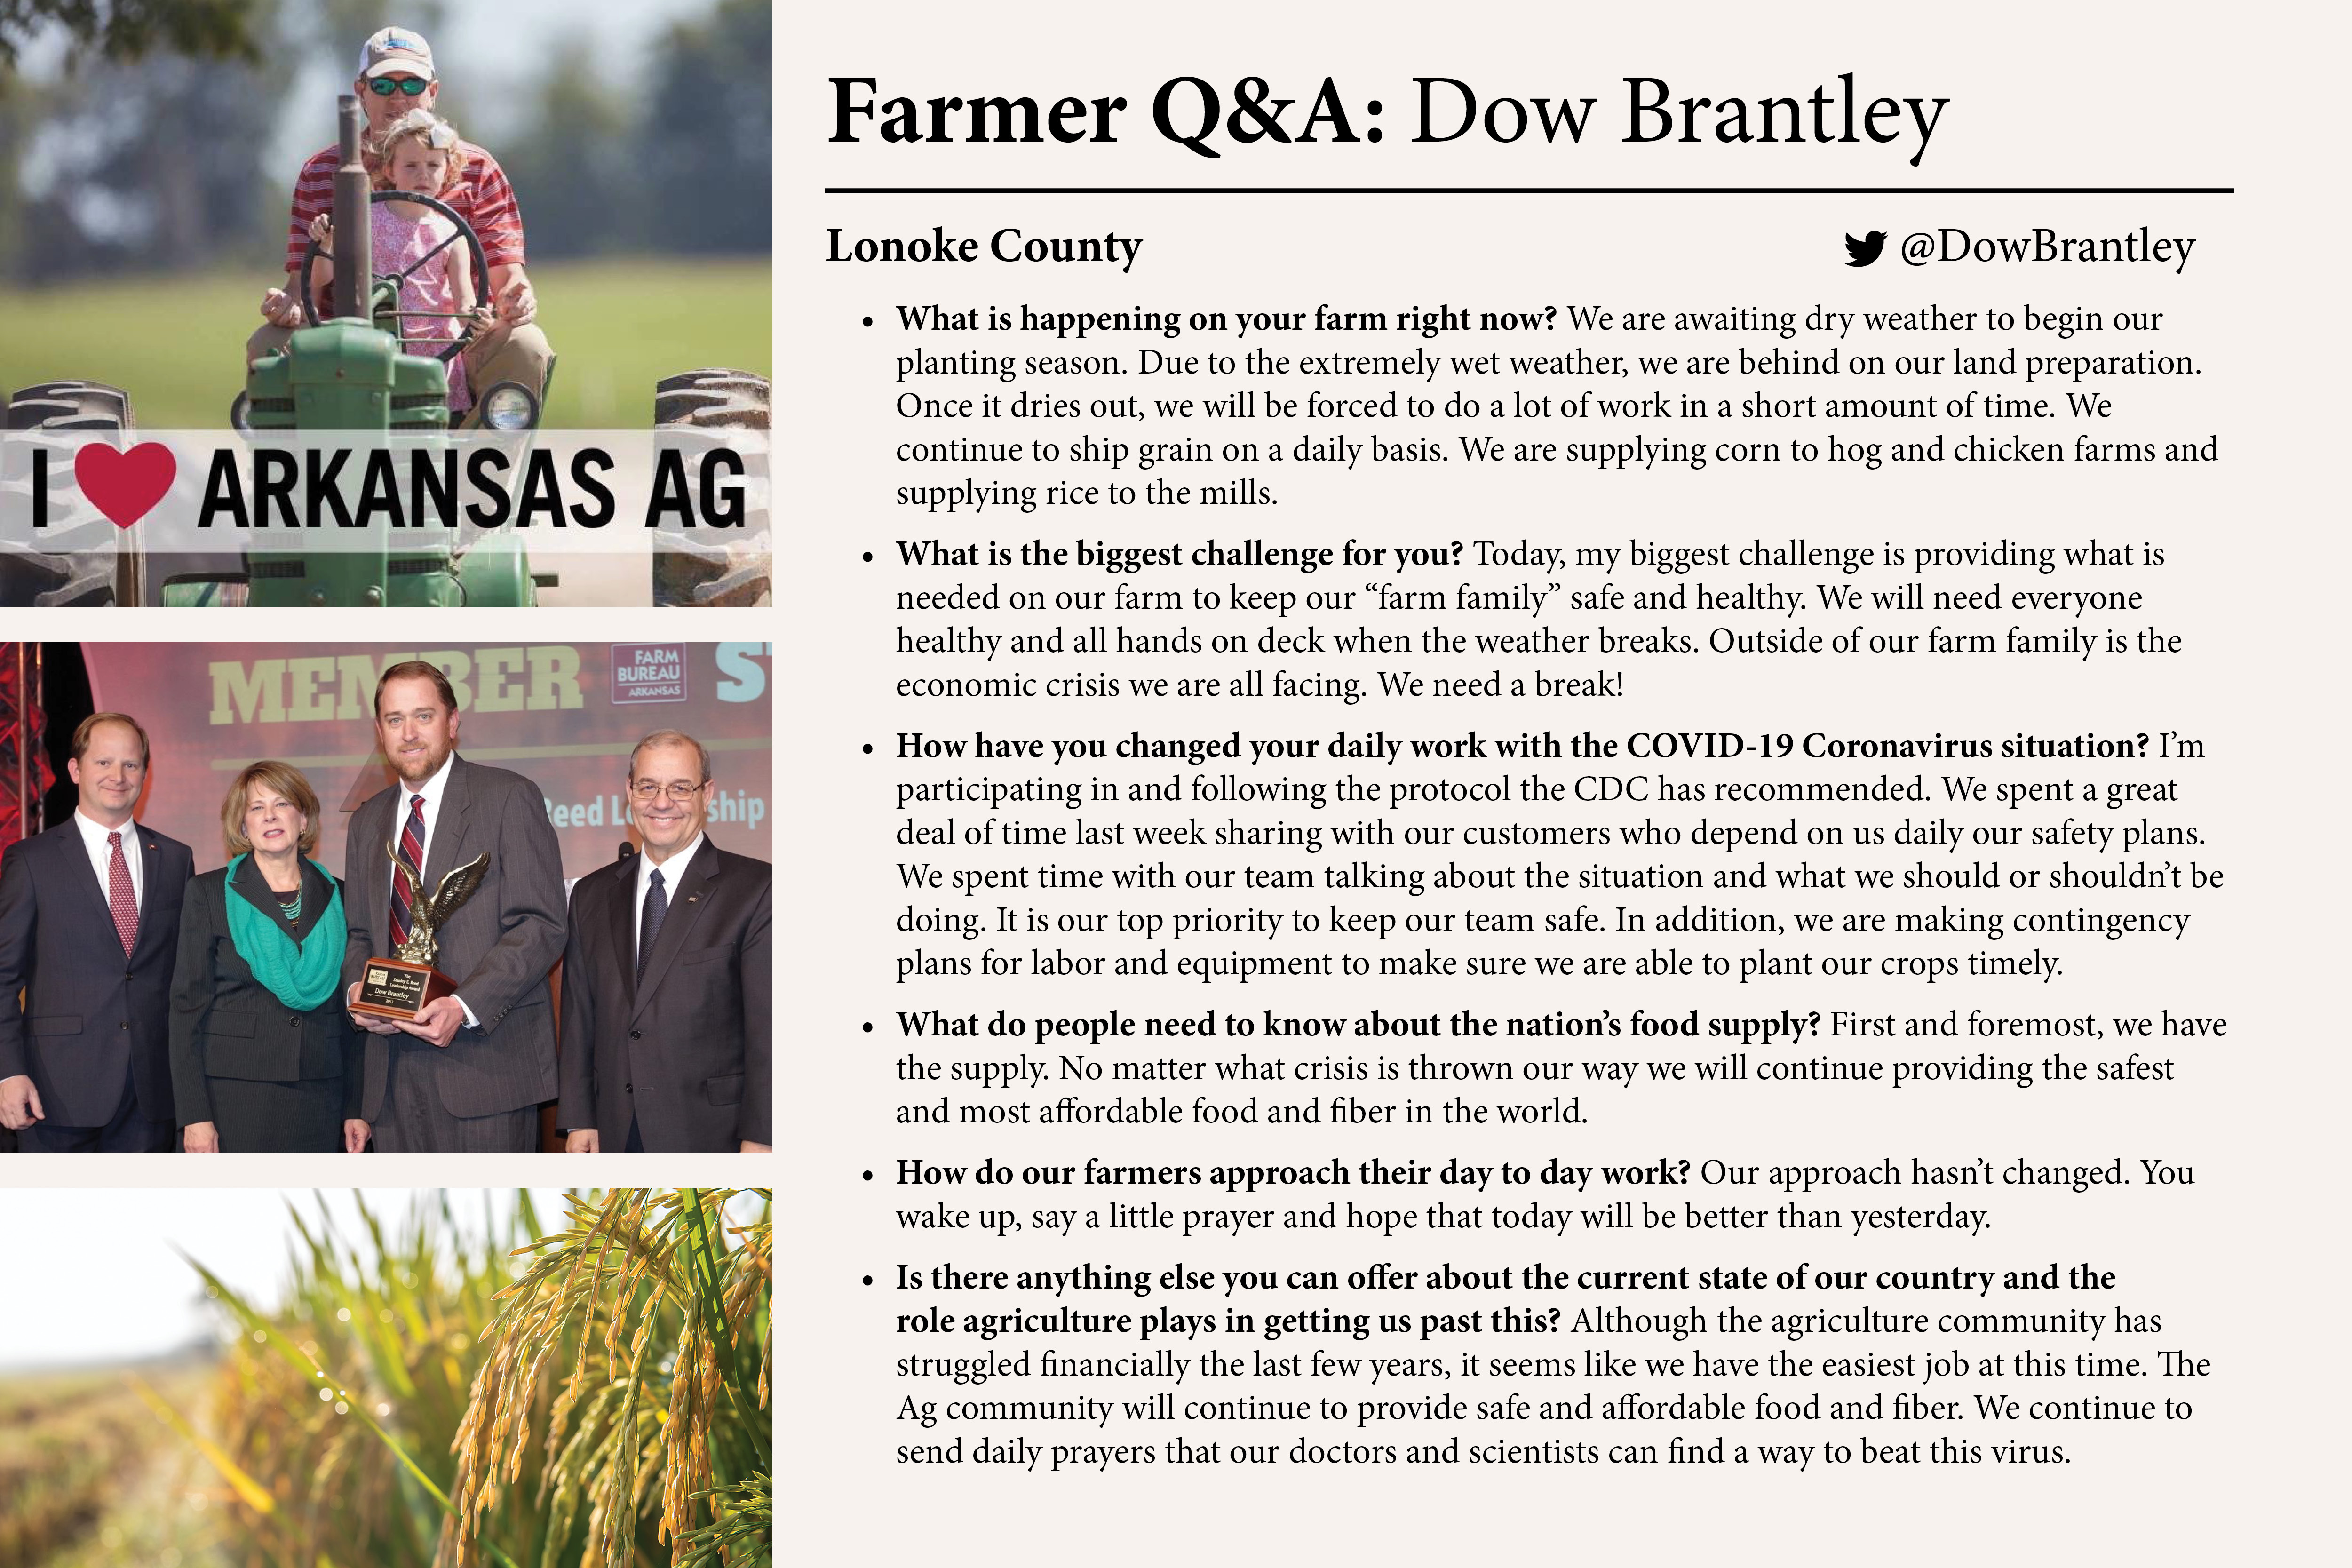 Image with Q&A information on Dow Brantley.